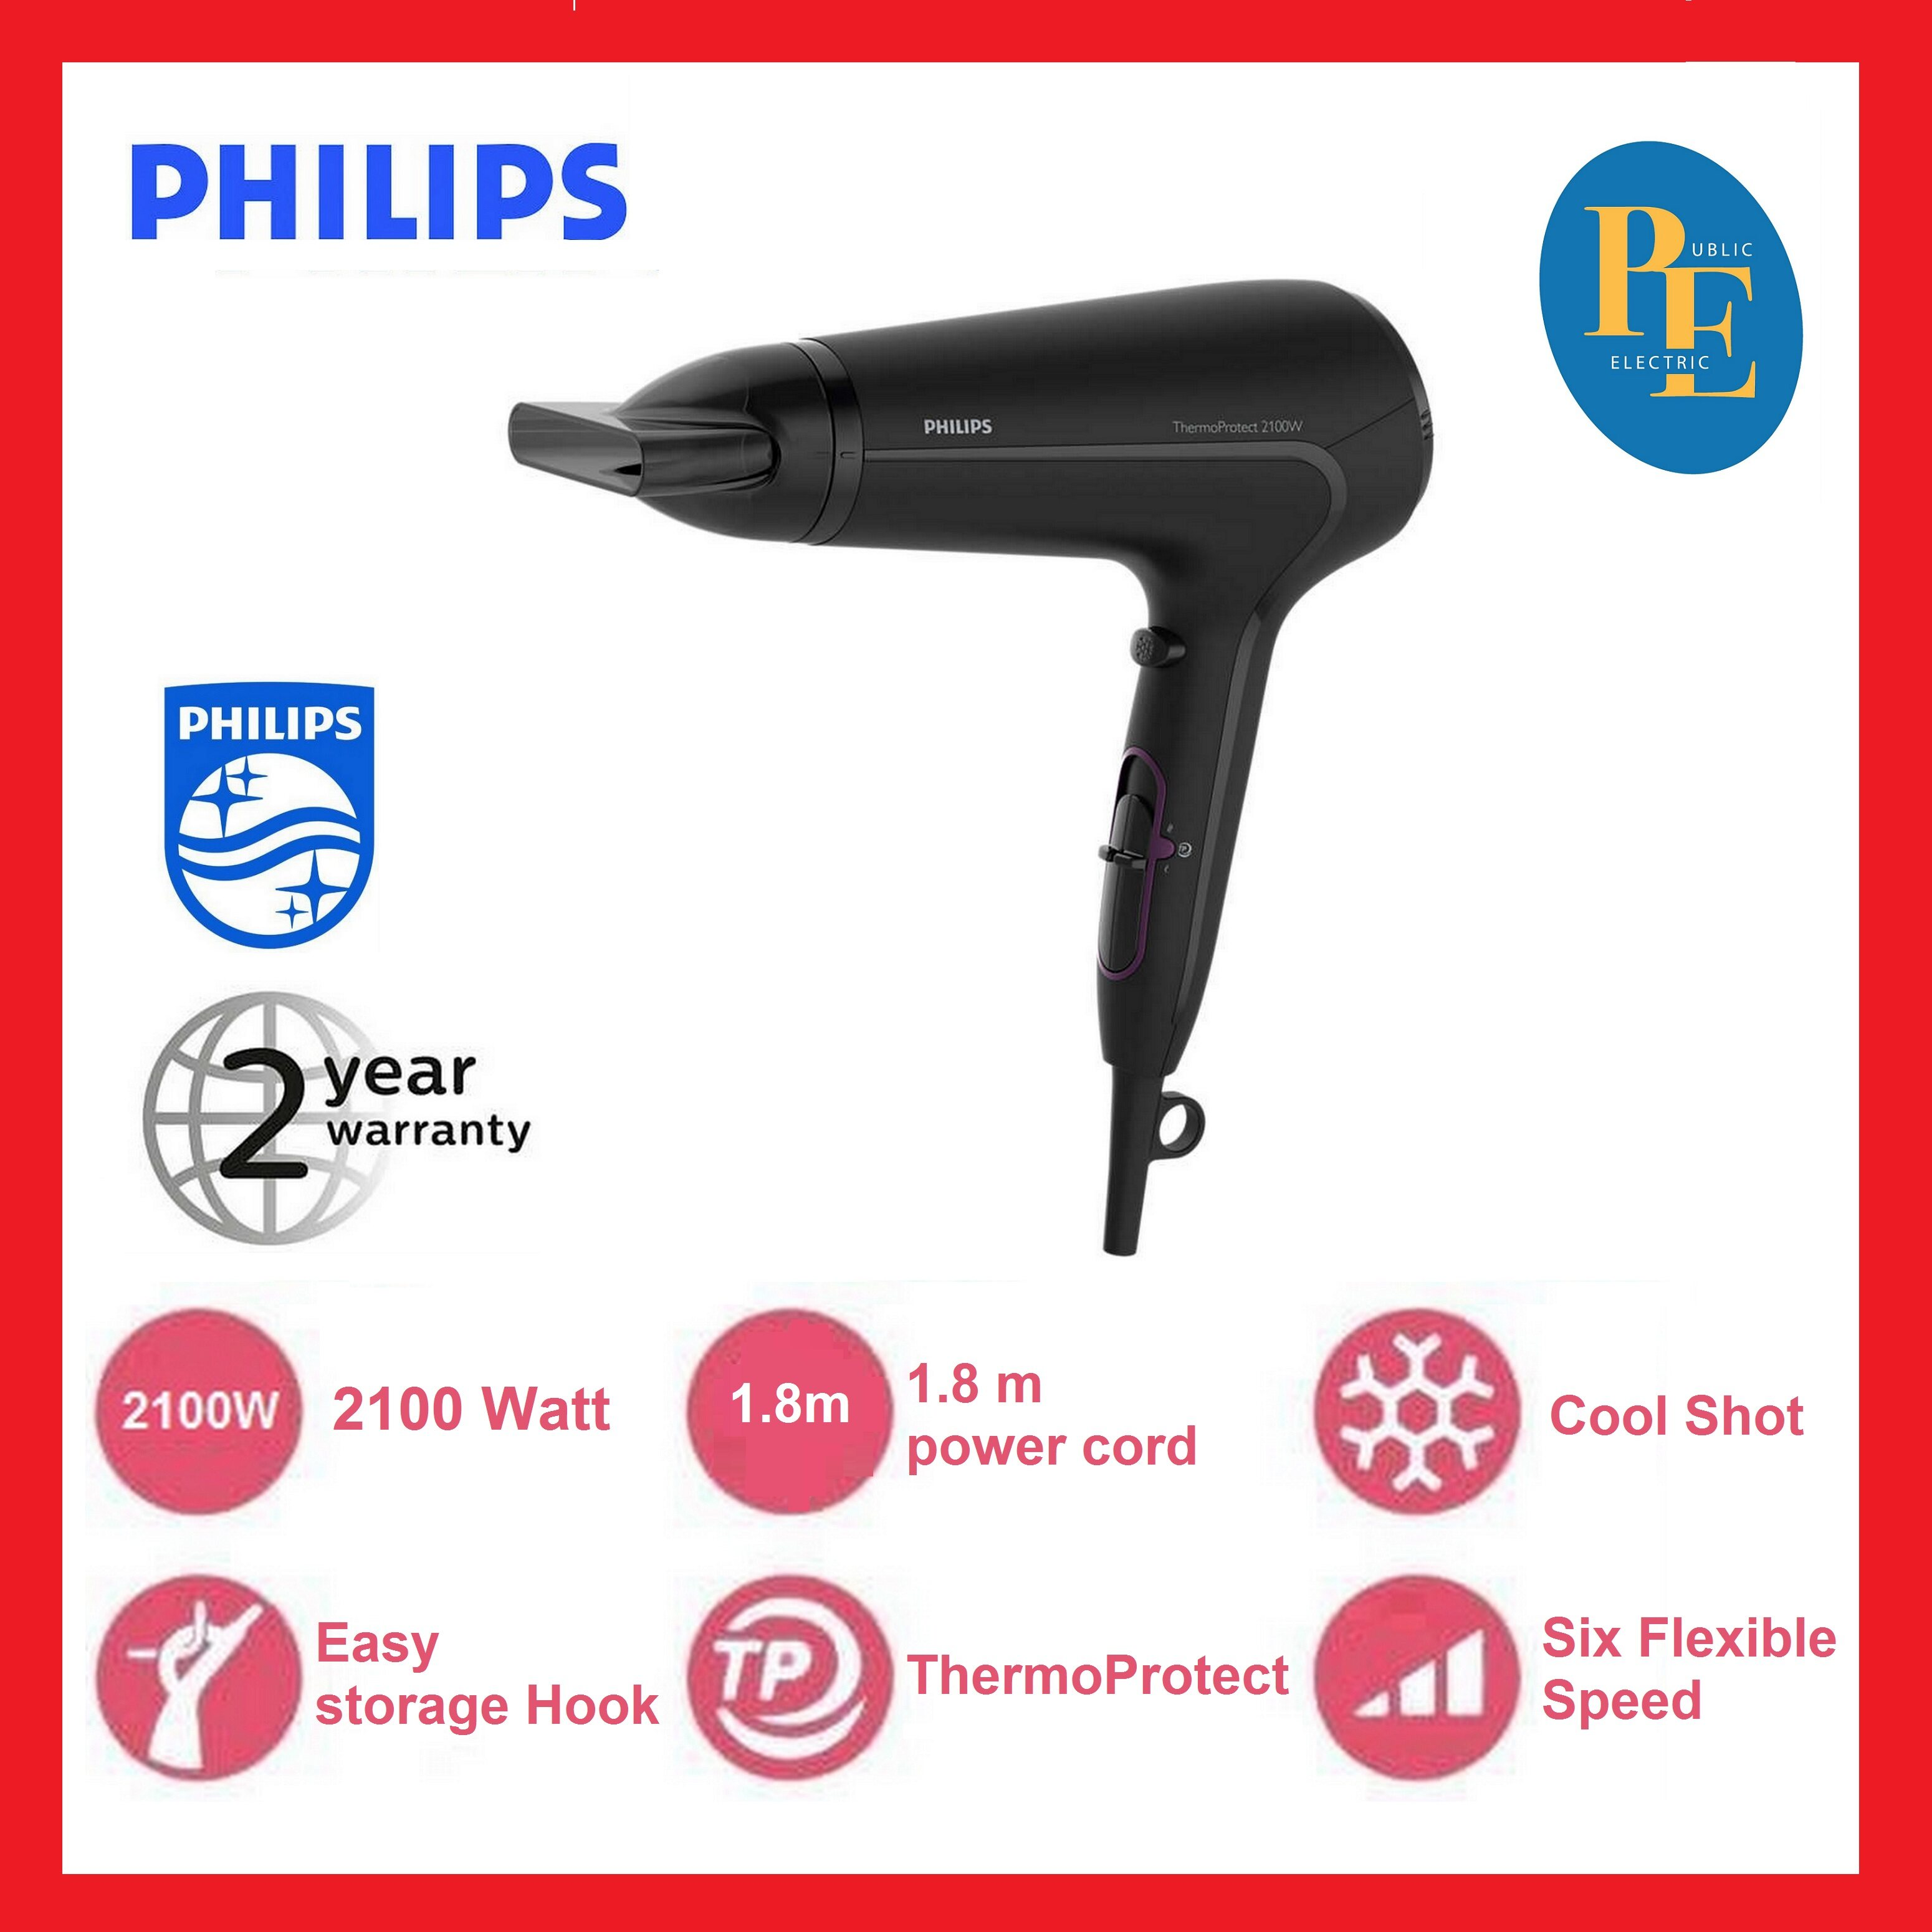 Philips ThermoProtect Hair Dryer With 14mm Styling Nozzle - HP8230